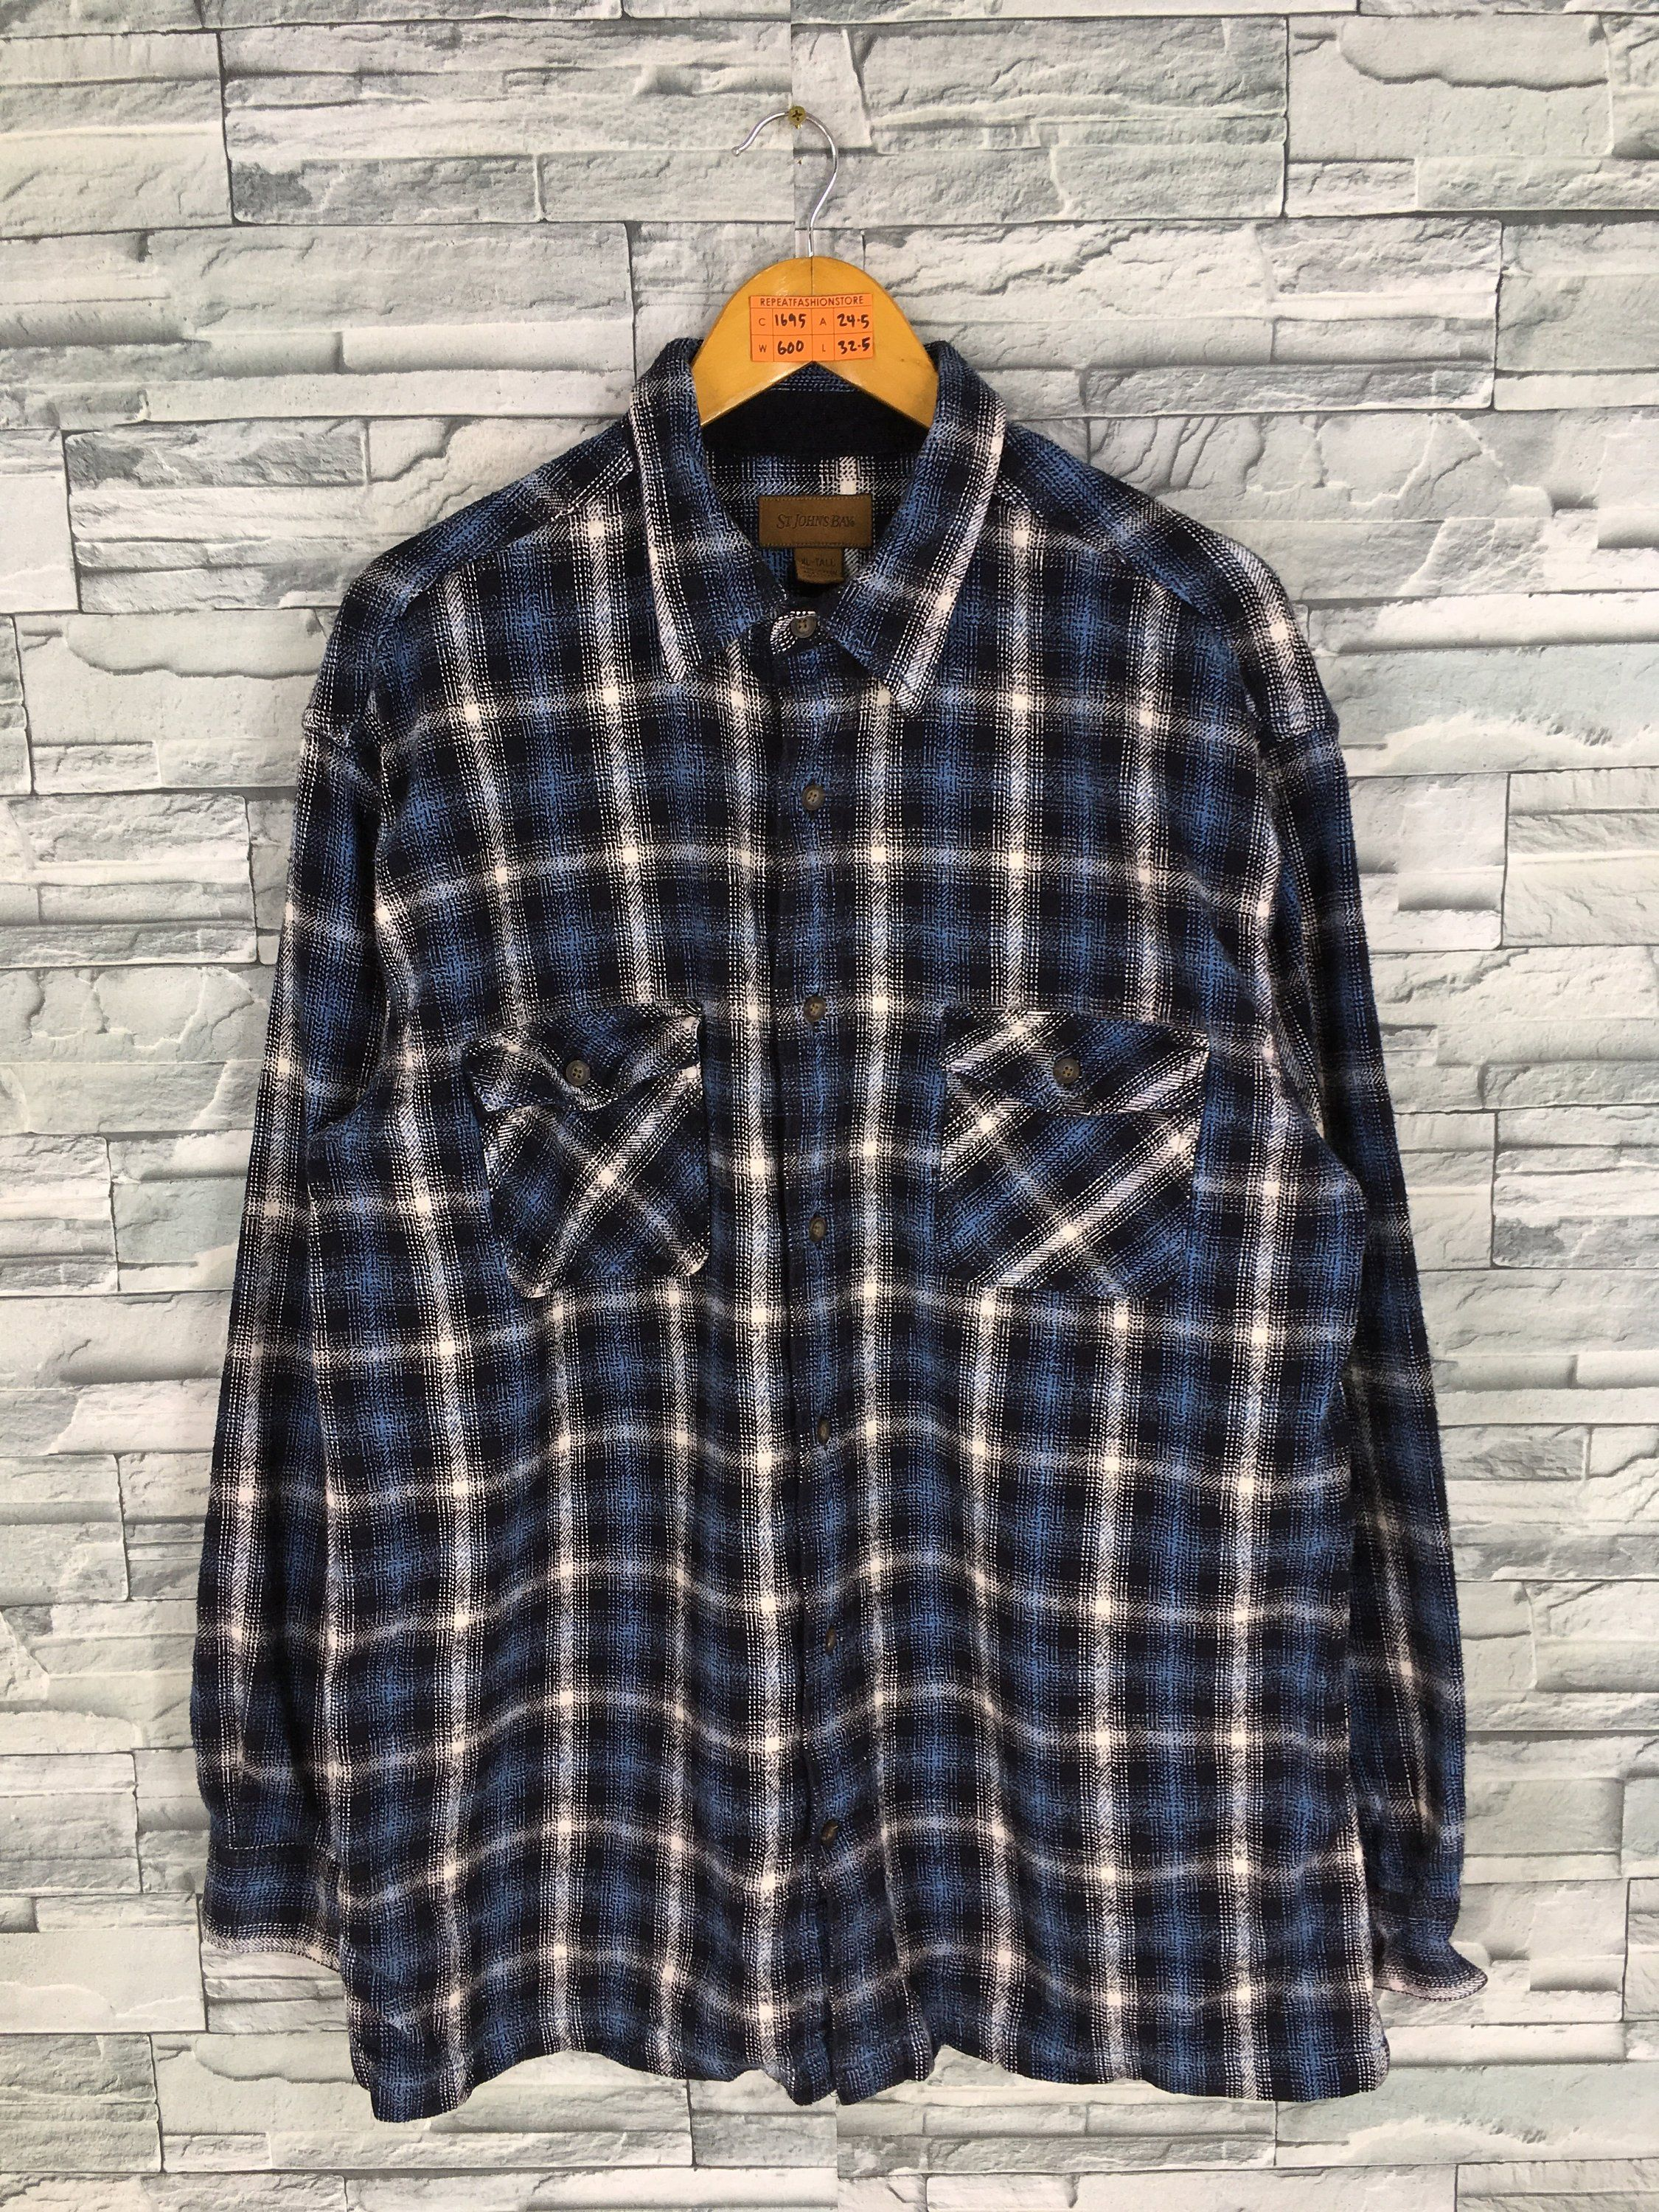 69f964813 Vintage St John Bay Flannel Shirt XLarge 90's Plaid Checkered Shadow  Flannel Blue Distressed Flannel Rustic